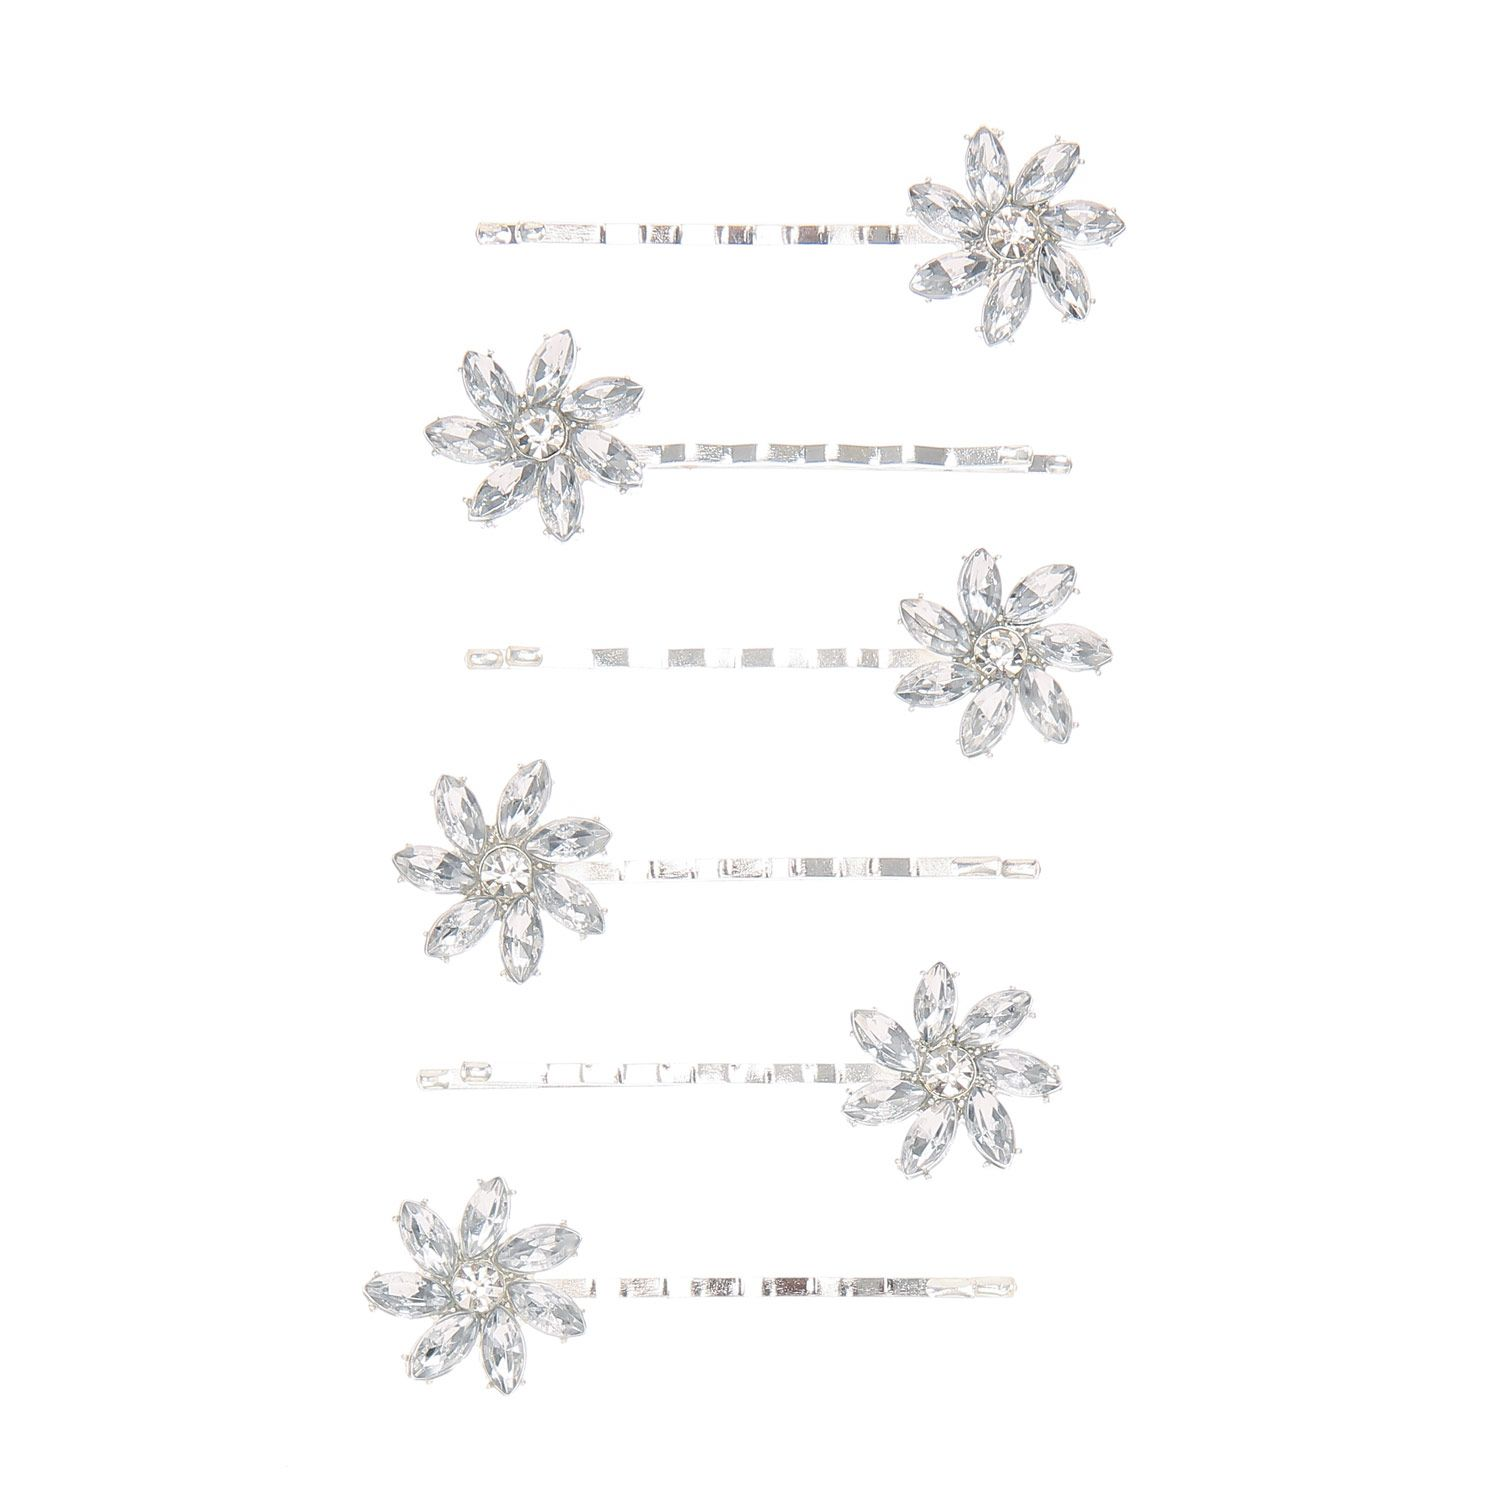 <P>Add dazzling flowers to your hair with these crystal bobby pins. They are the perfect accessory for any party. Long silver bobby pins decorated with crystal flowers.</P> - <UL> - <LI>Silver tone finish - <LI>Set of 6 - <LI>Crystal flower design</LI></UL>